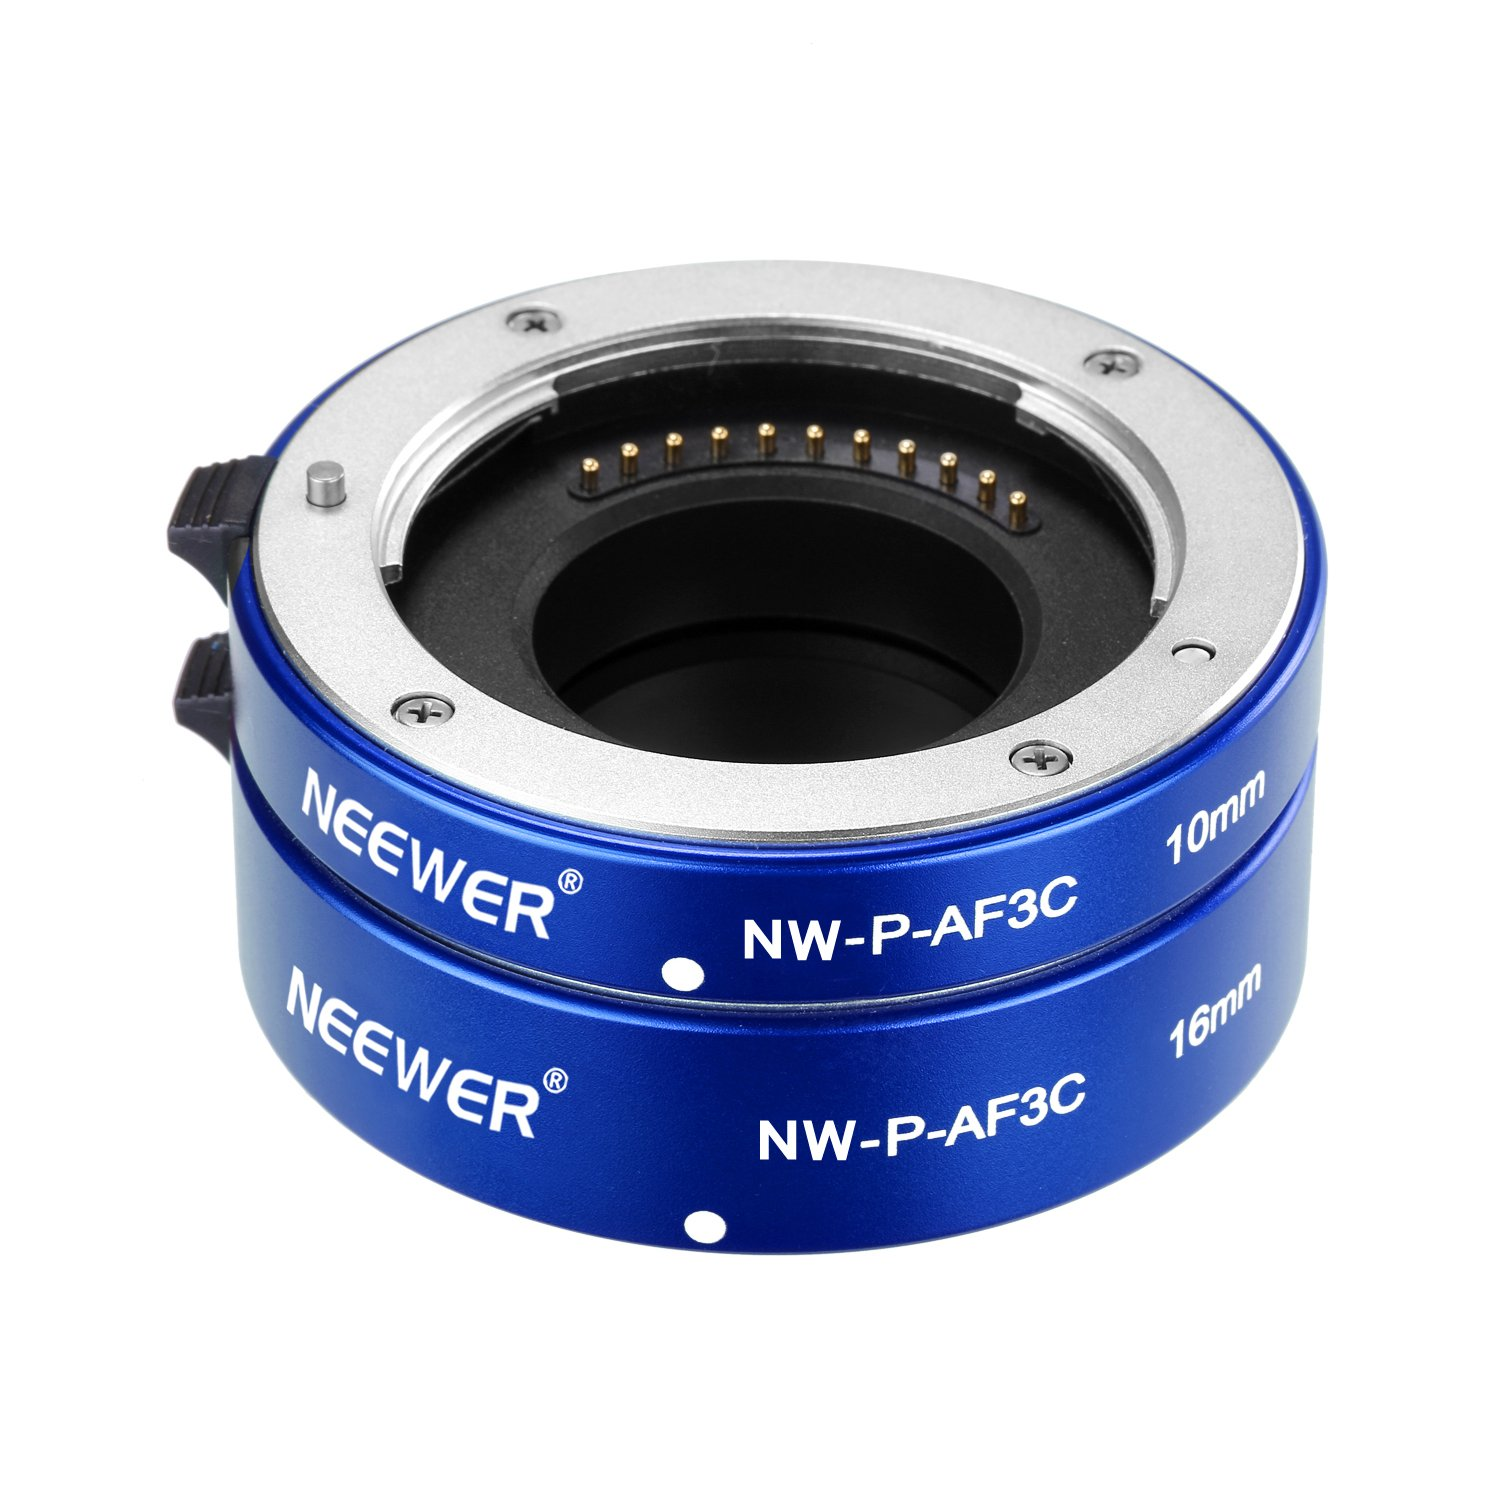 Neewer® All-Metal Auto Focus Macro Close-up Extension Tube Set 10mm,16mm for Micro Four Thirds(Micro-4/3) Mirrorless Cameras, fits Panasonic G1 G2 G3 G10 GH1 GH2 Olympus E-P1 E-P2 E-P3 E-P5 E-PL1 B01J5OR0TK